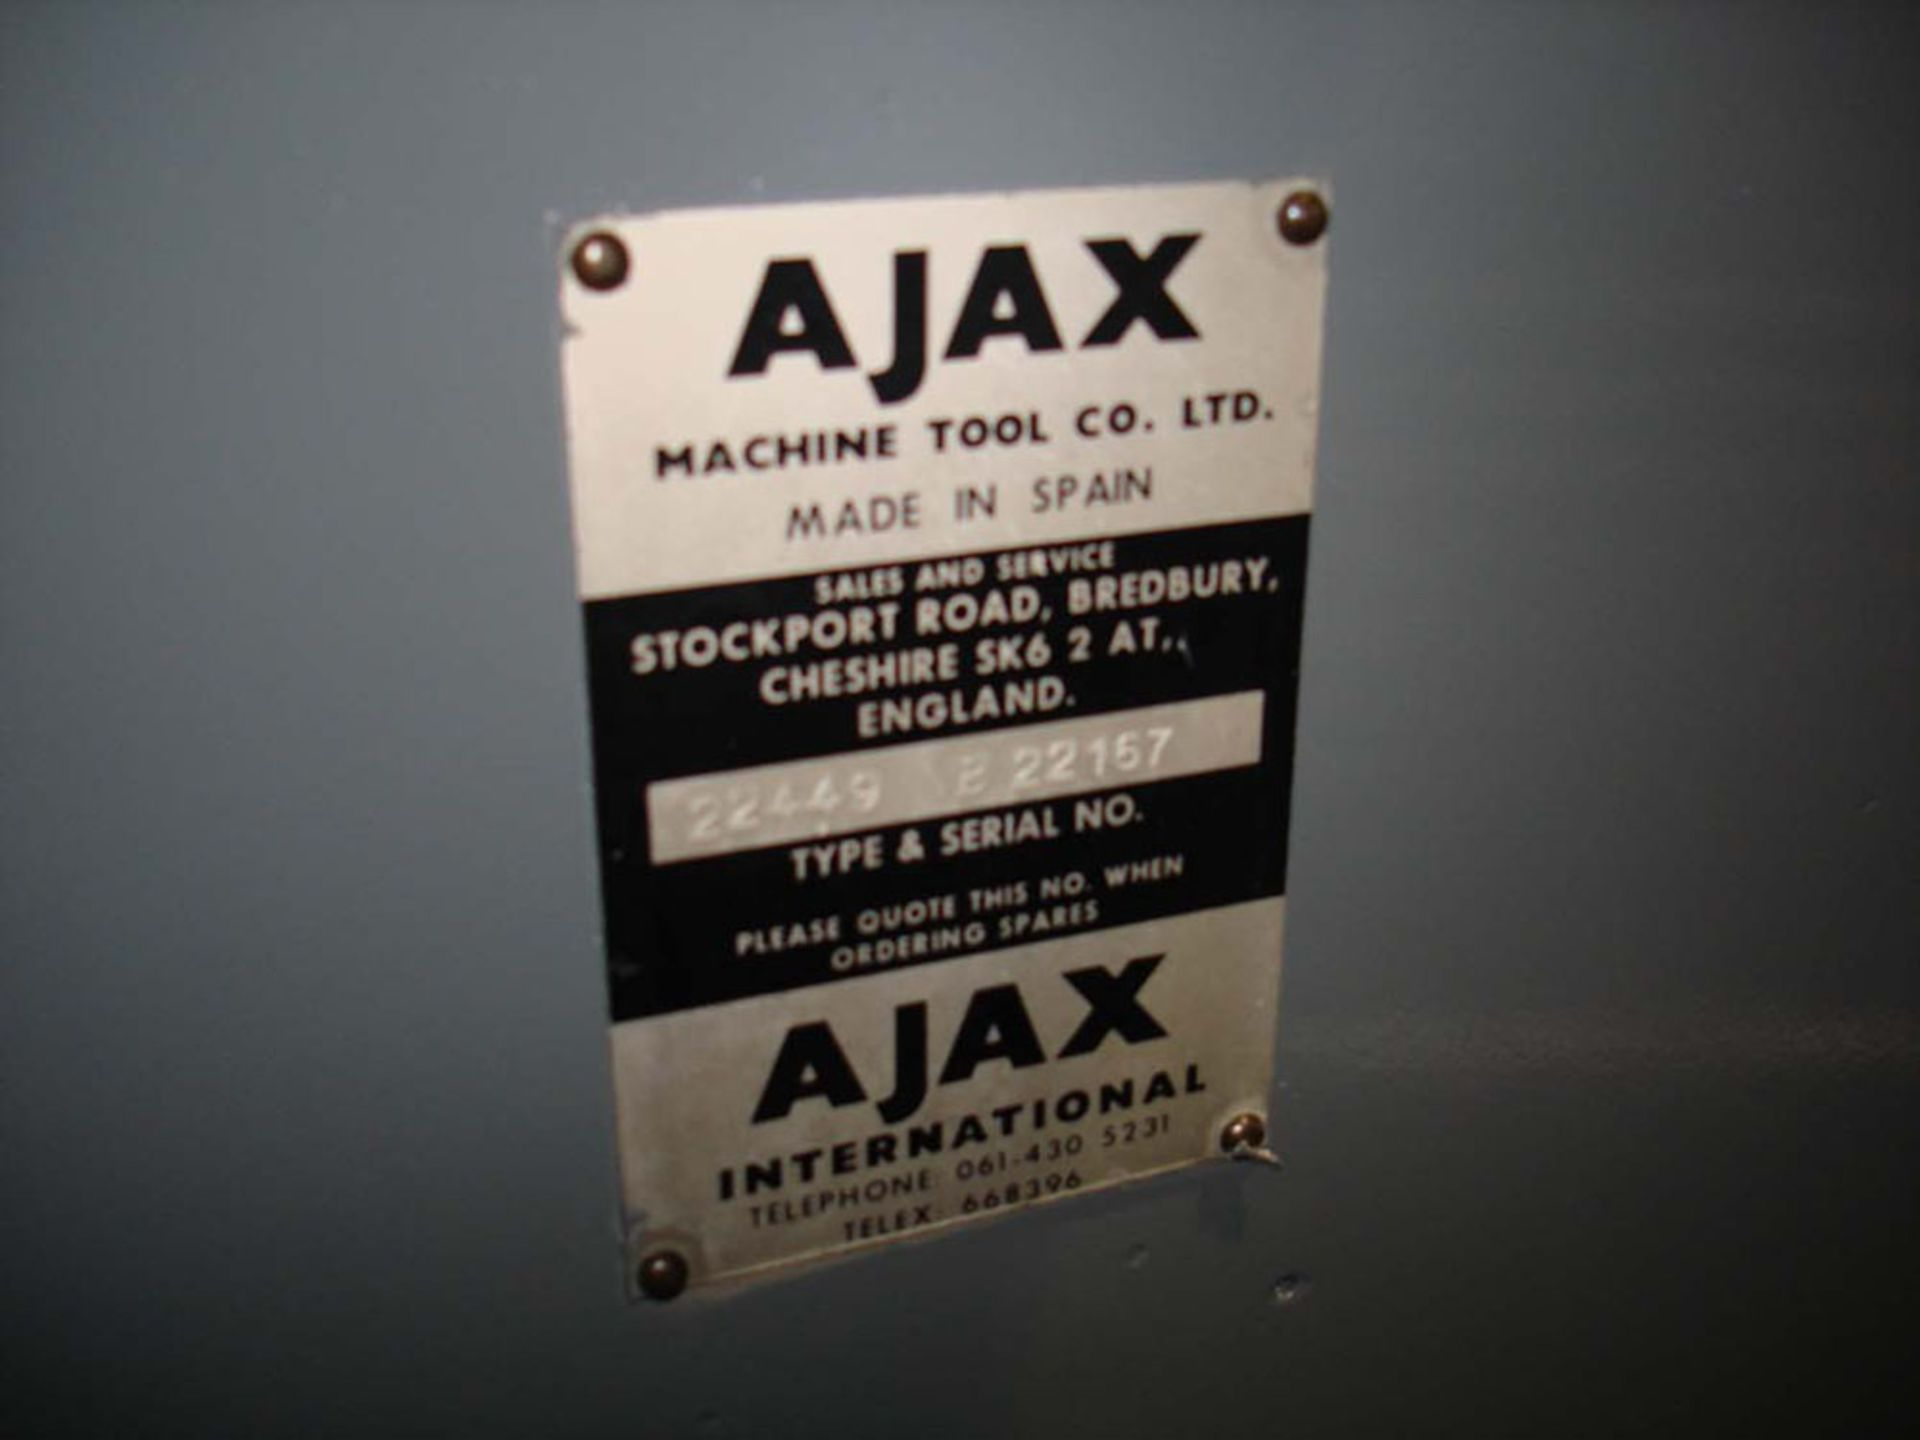 Ajax Model UP Universal Milling Machine. Table 1100 x 240mm. Long Traverse 750mm. - Image 6 of 6